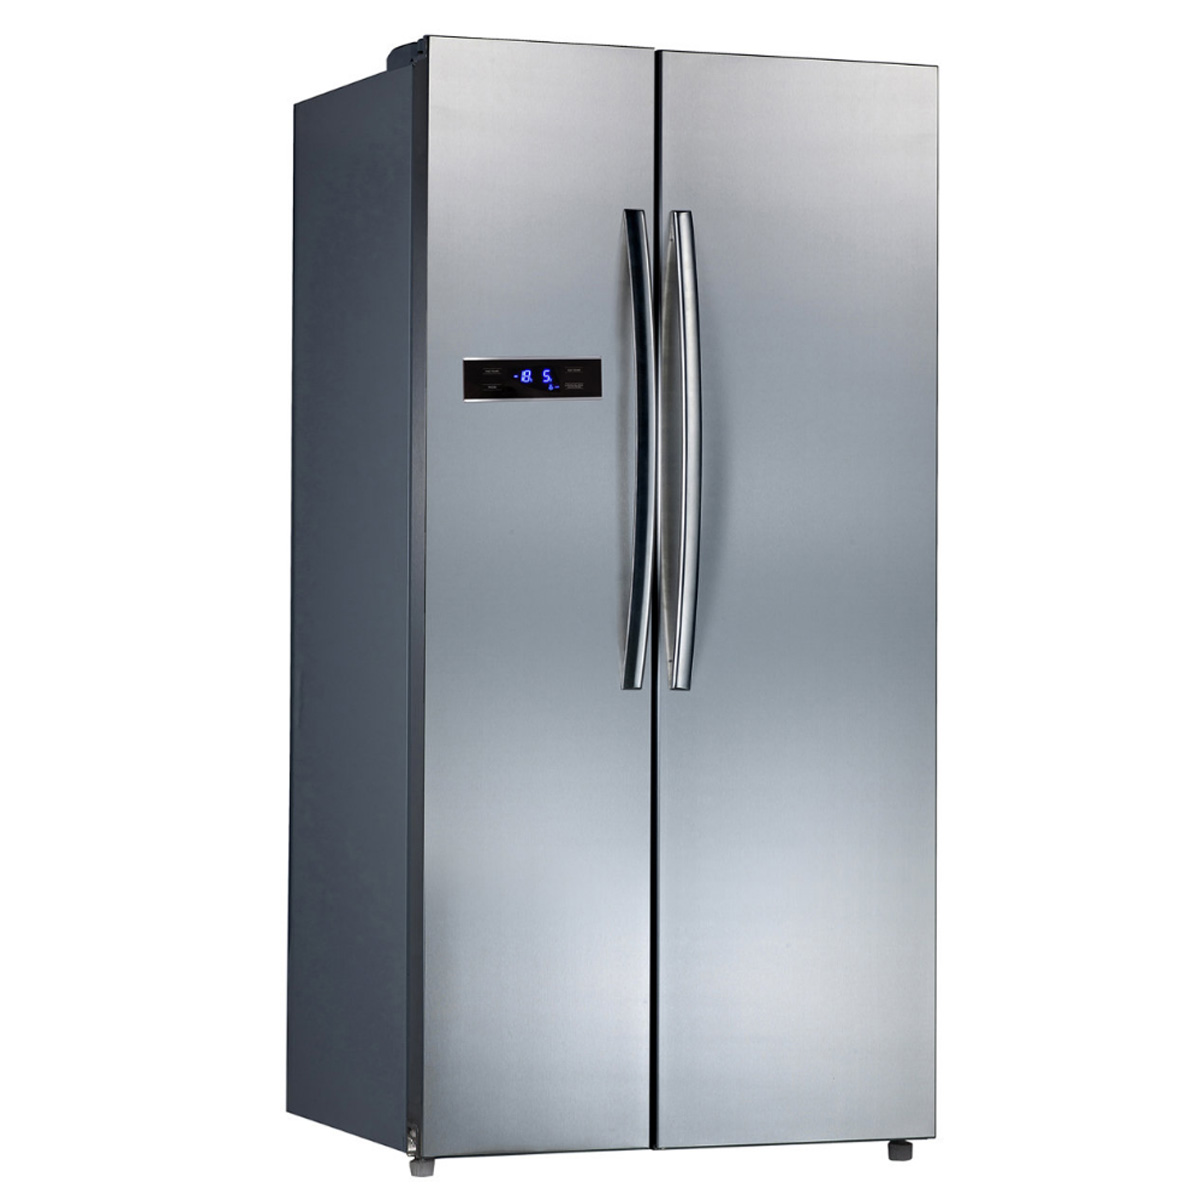 Midea MSBS584S 584L Side by Side Fridge